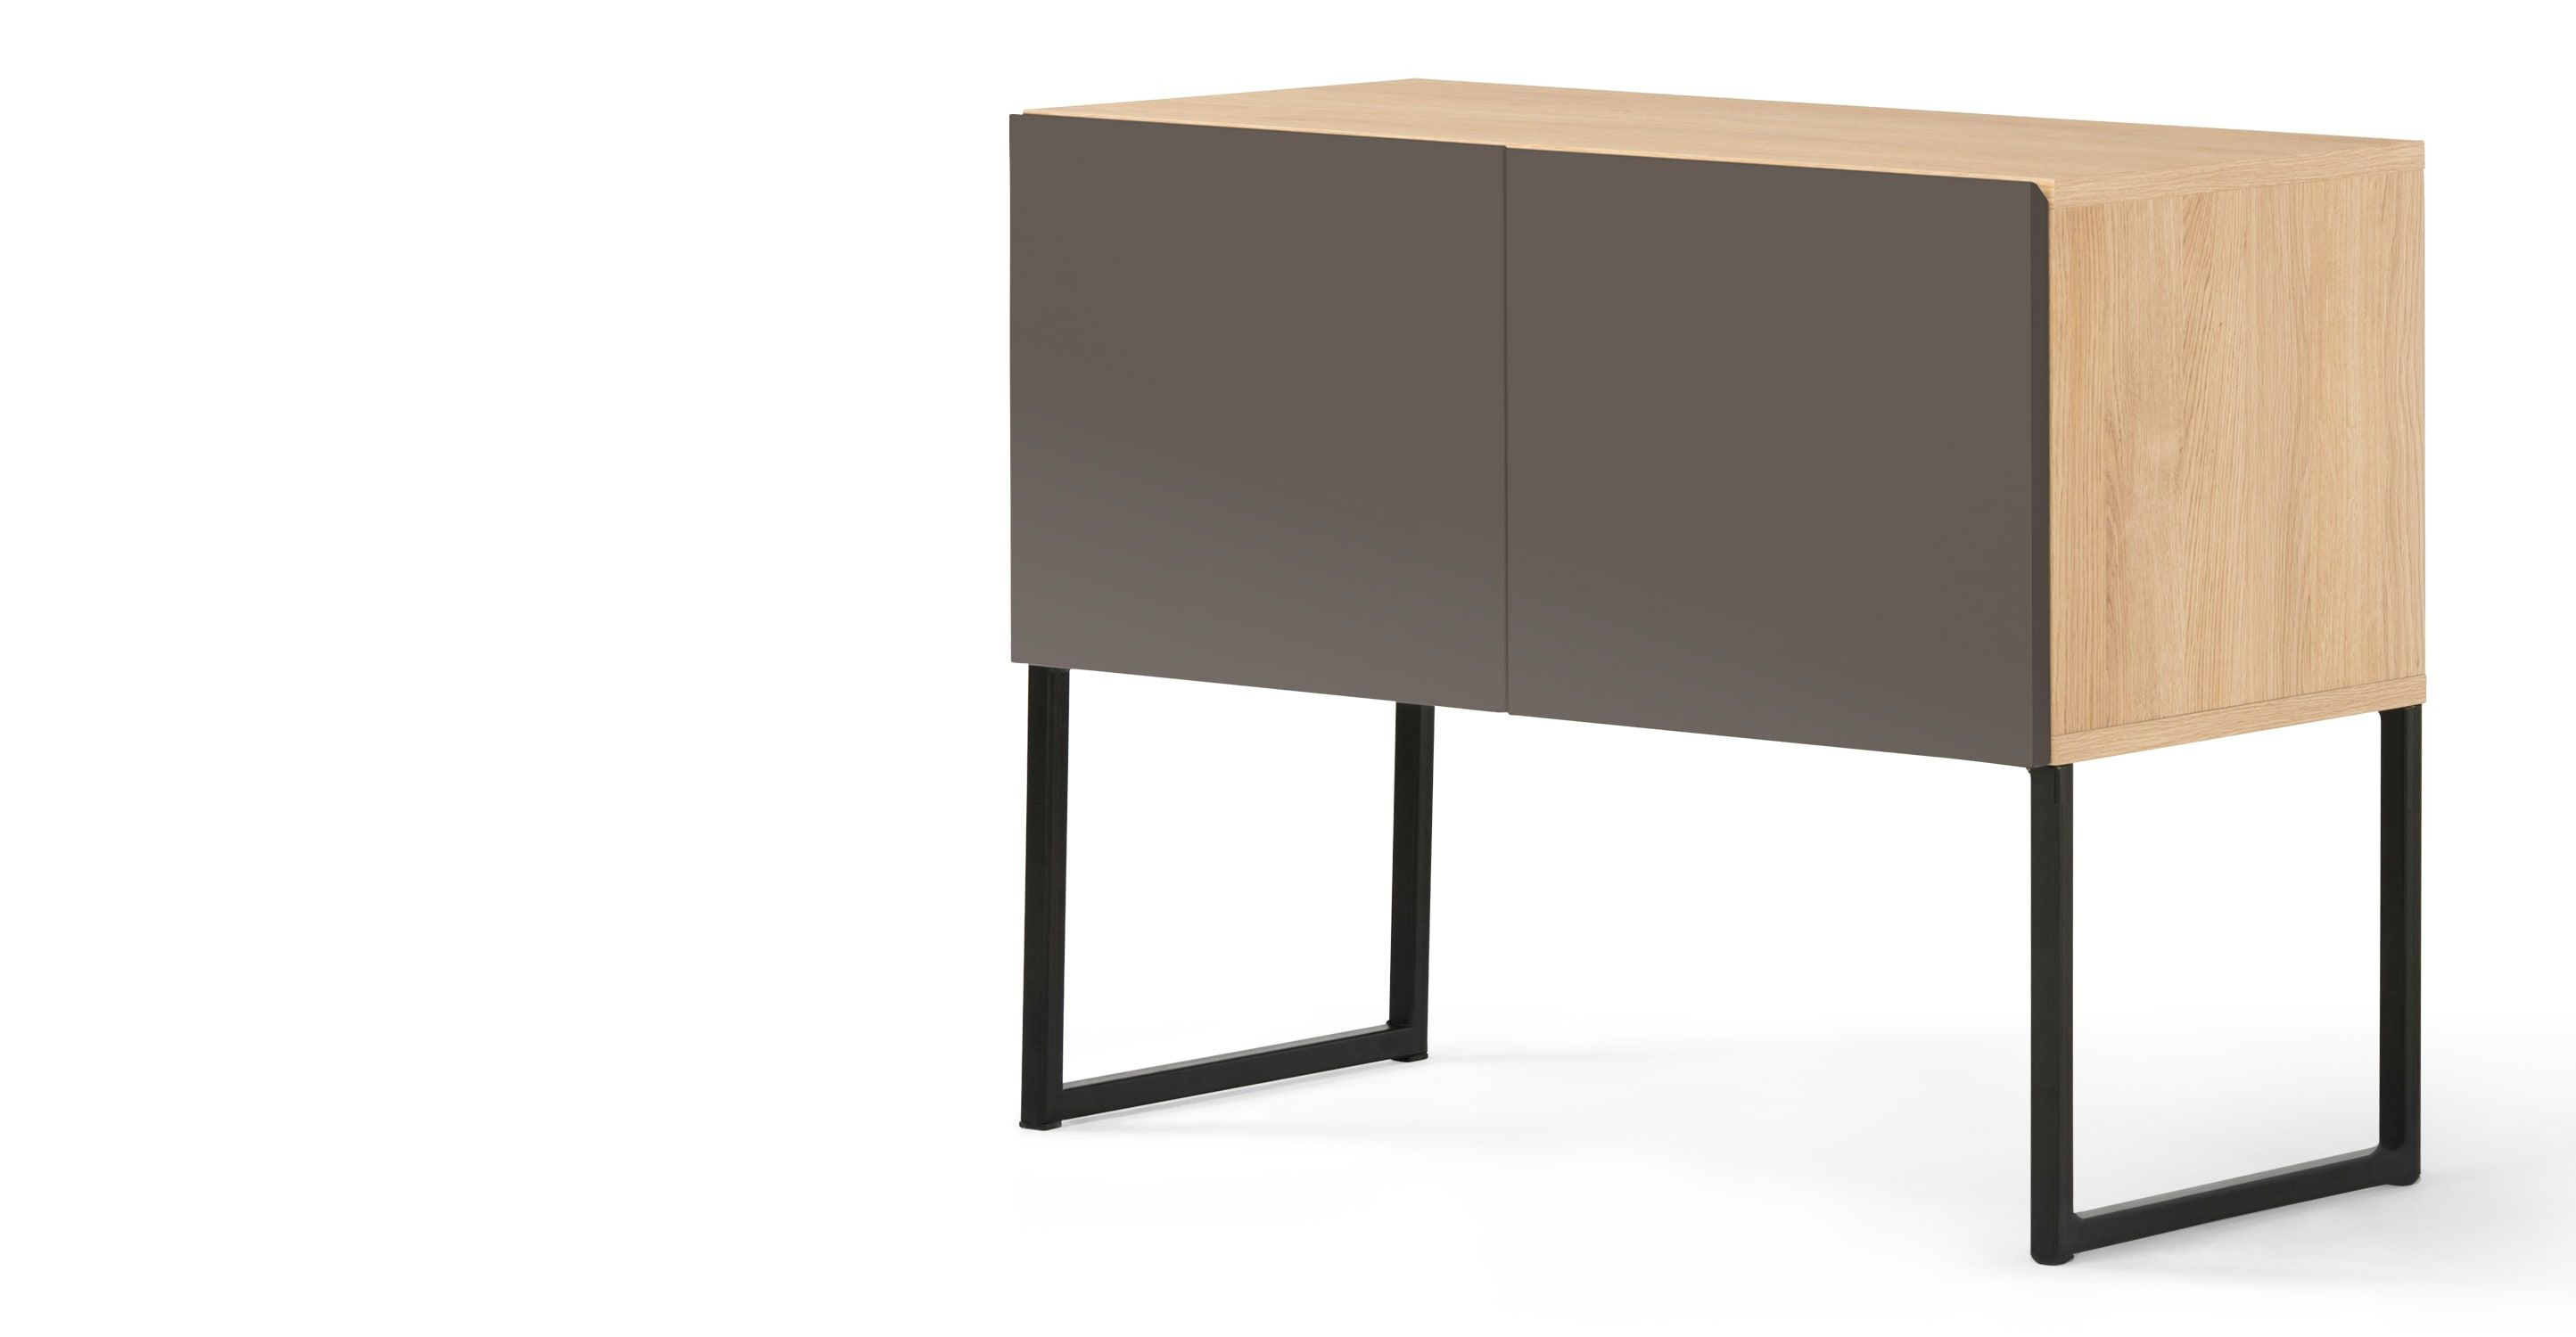 Faszinierend Sideboard Mit Füßen Ideen Von Hopkins Sideboard, Oak And Grey | Madereview